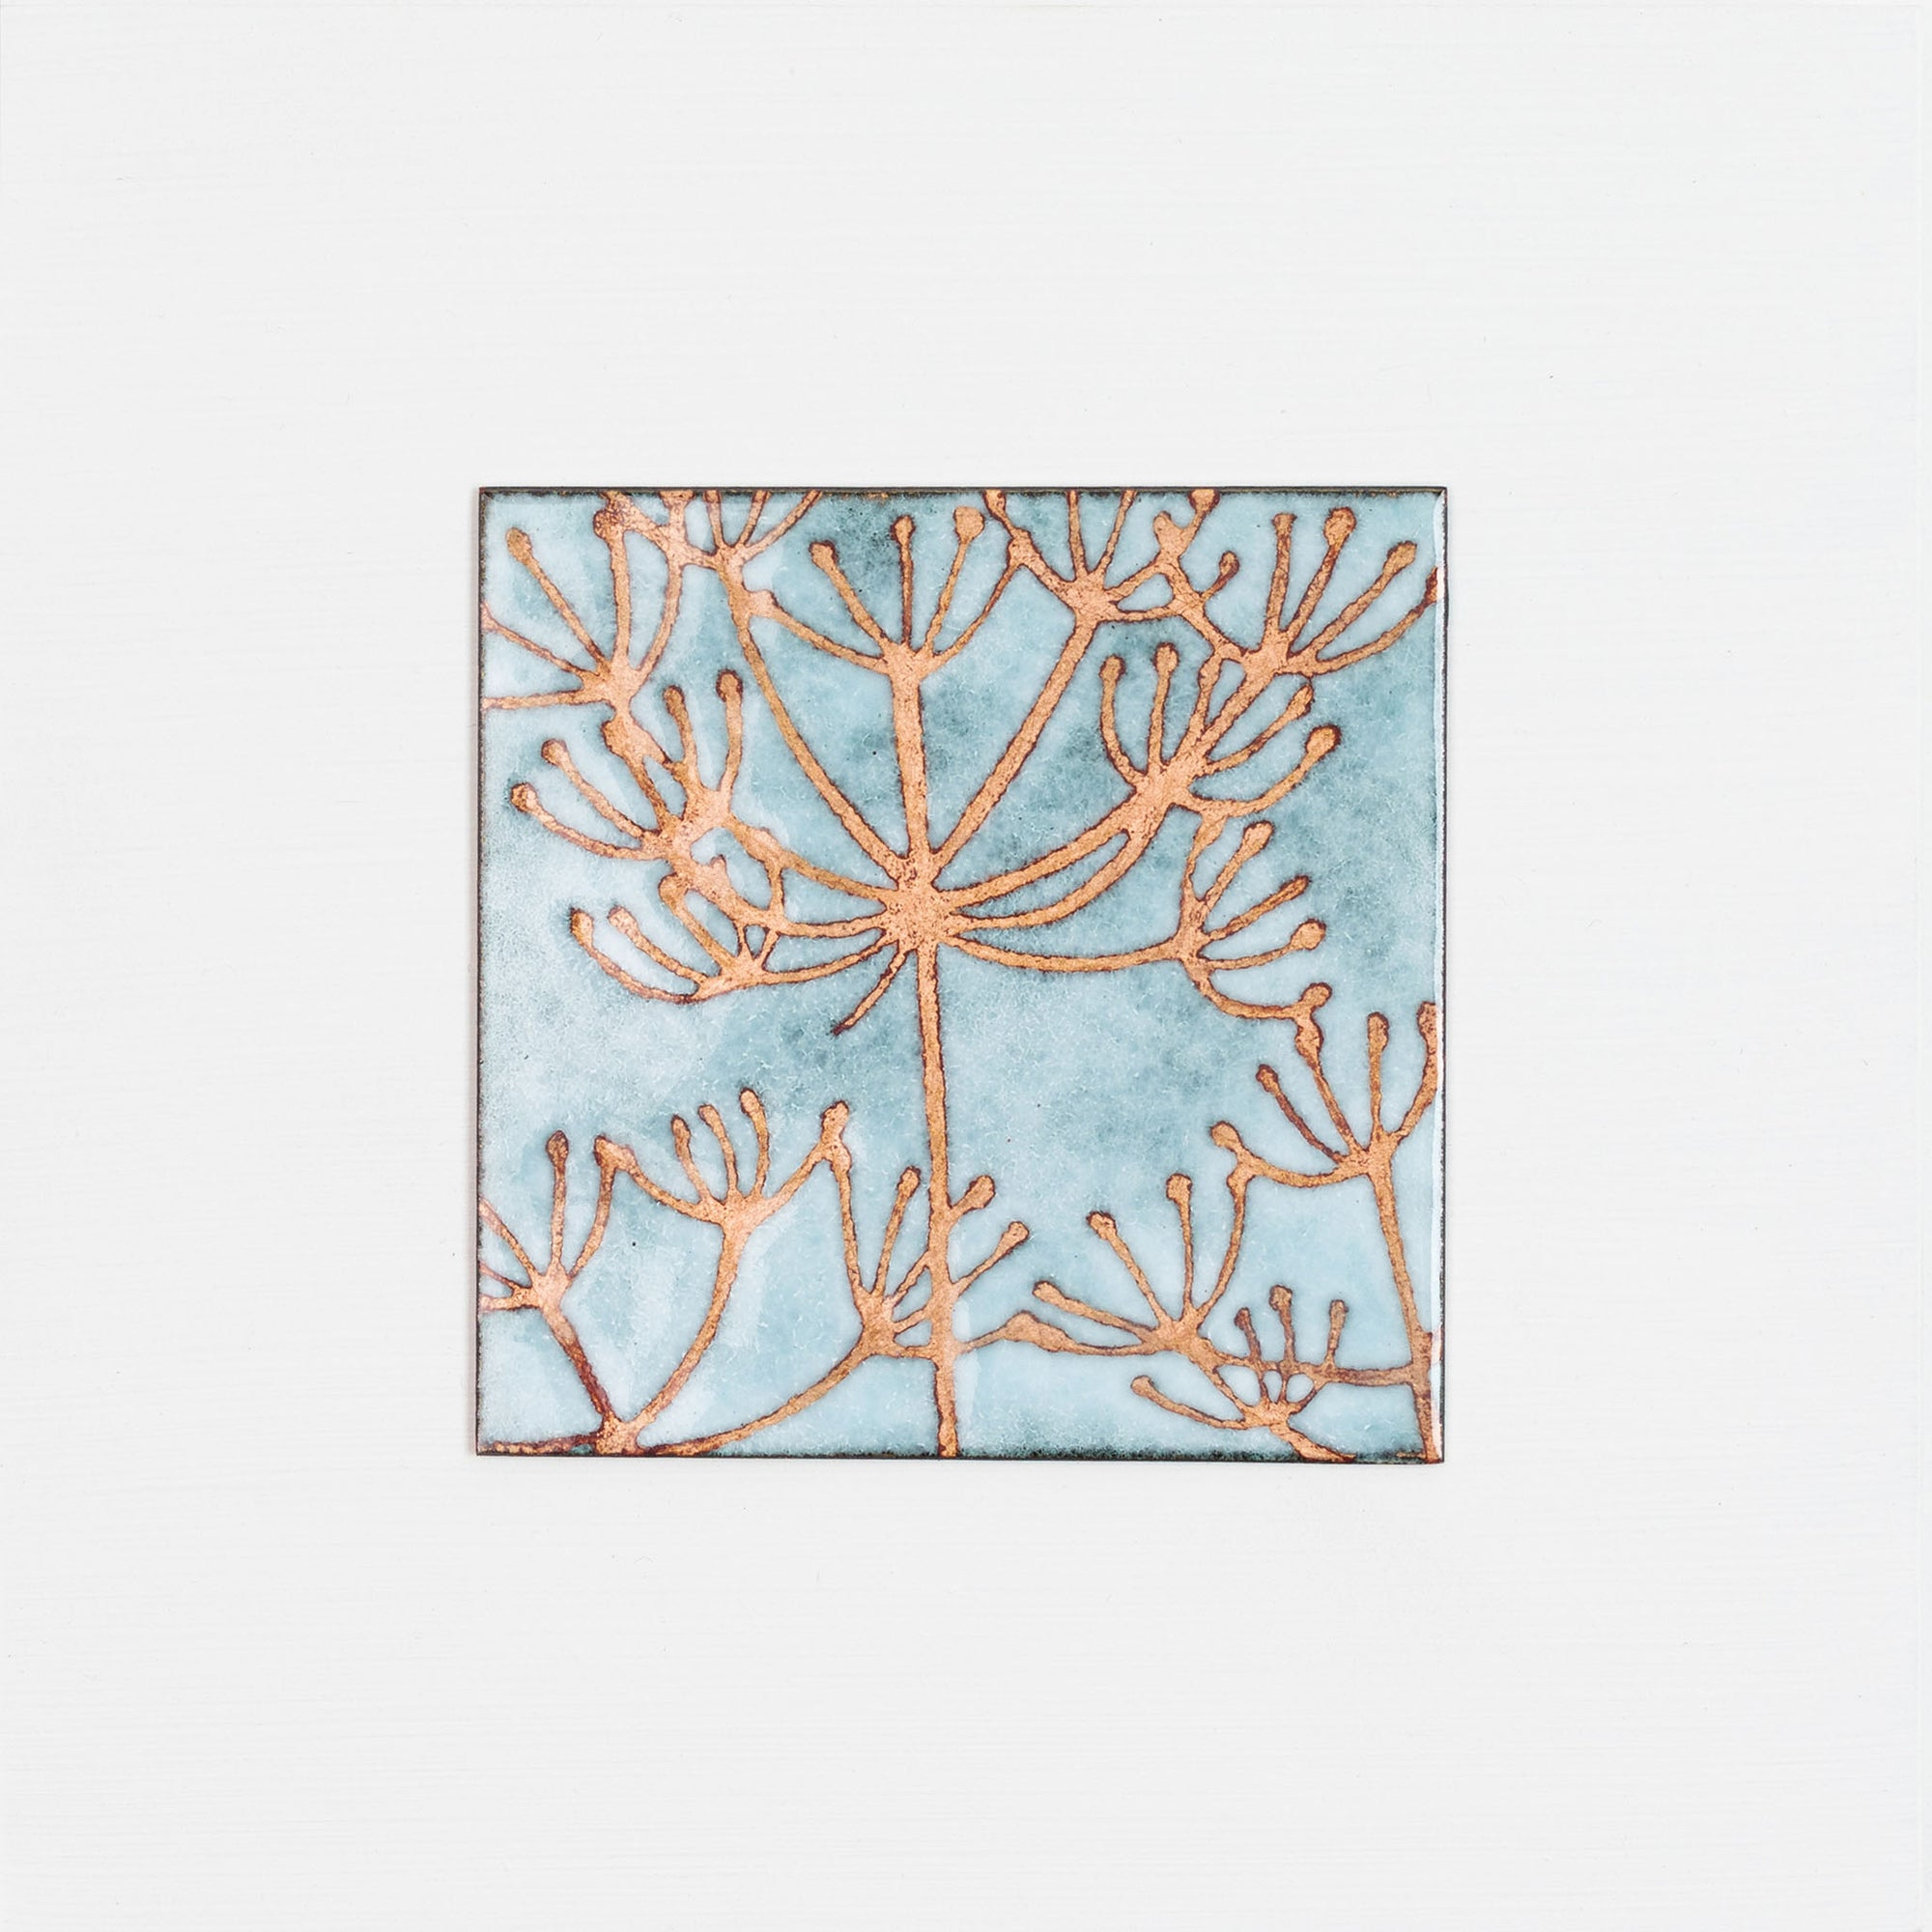 Vitreous enamel on copper panel, by Janine Partington, available from Padstow Gallery Cornwall